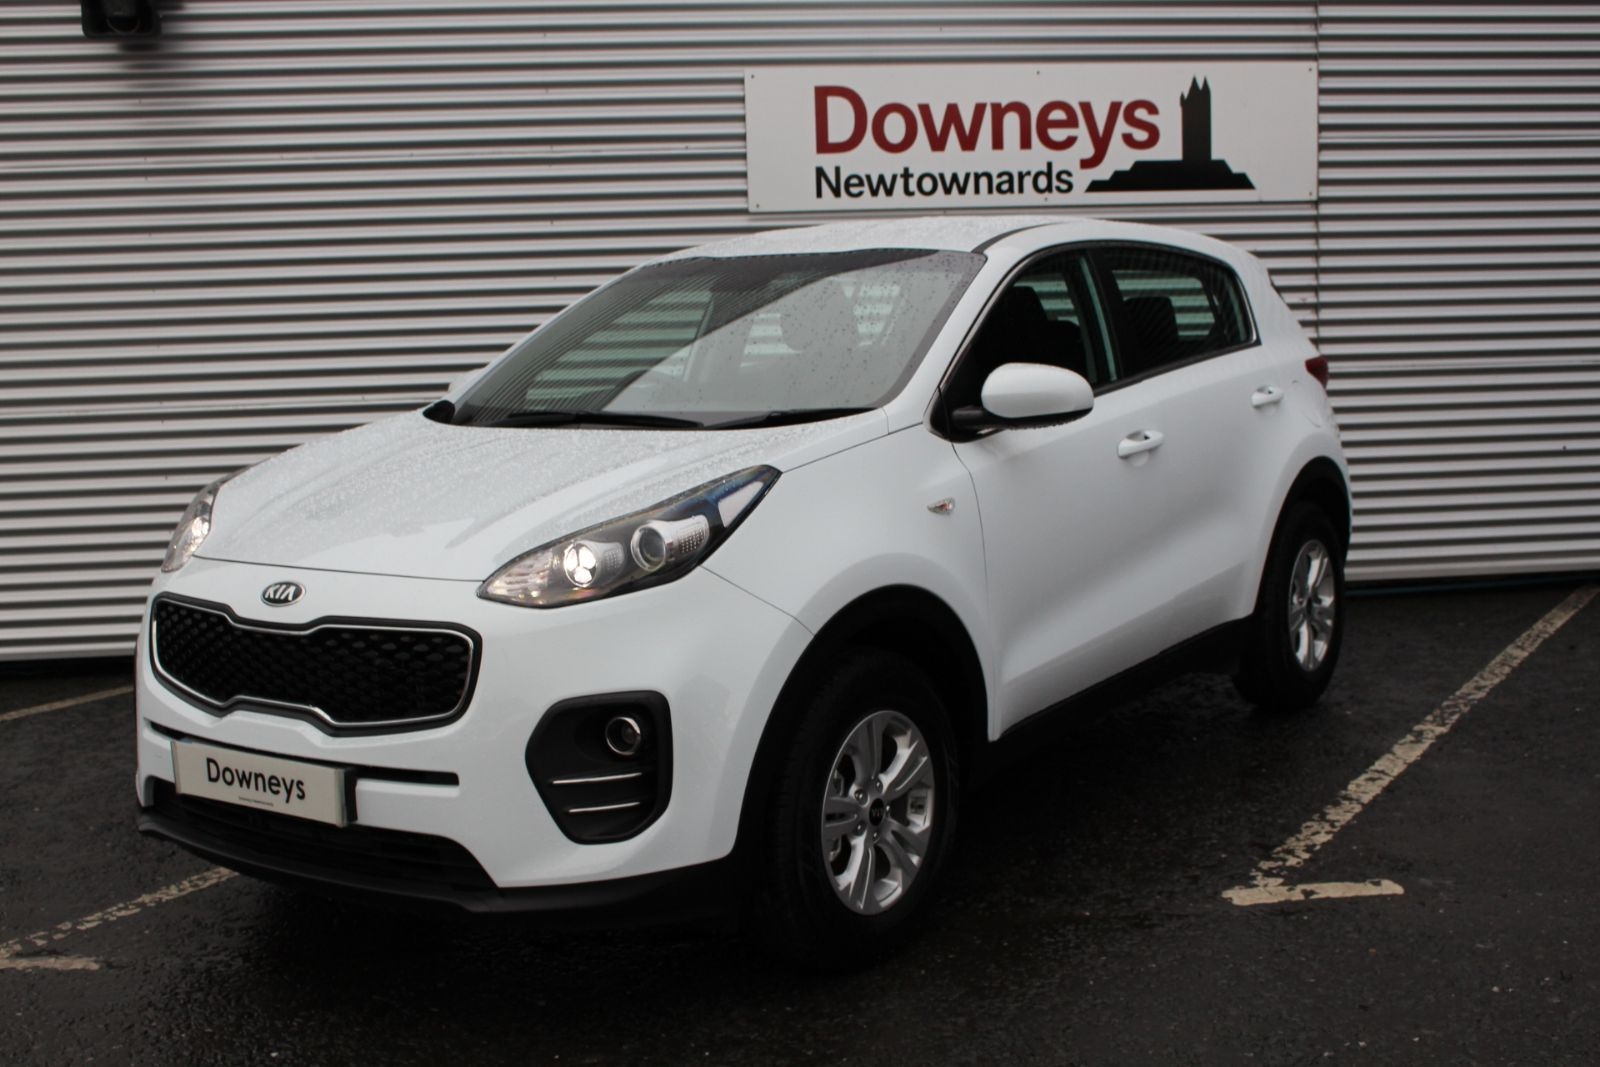 Kia SPORTAGE 1 ISG 1.7CRDI FULL KIA WARRANTY UNTIL JAN 2026